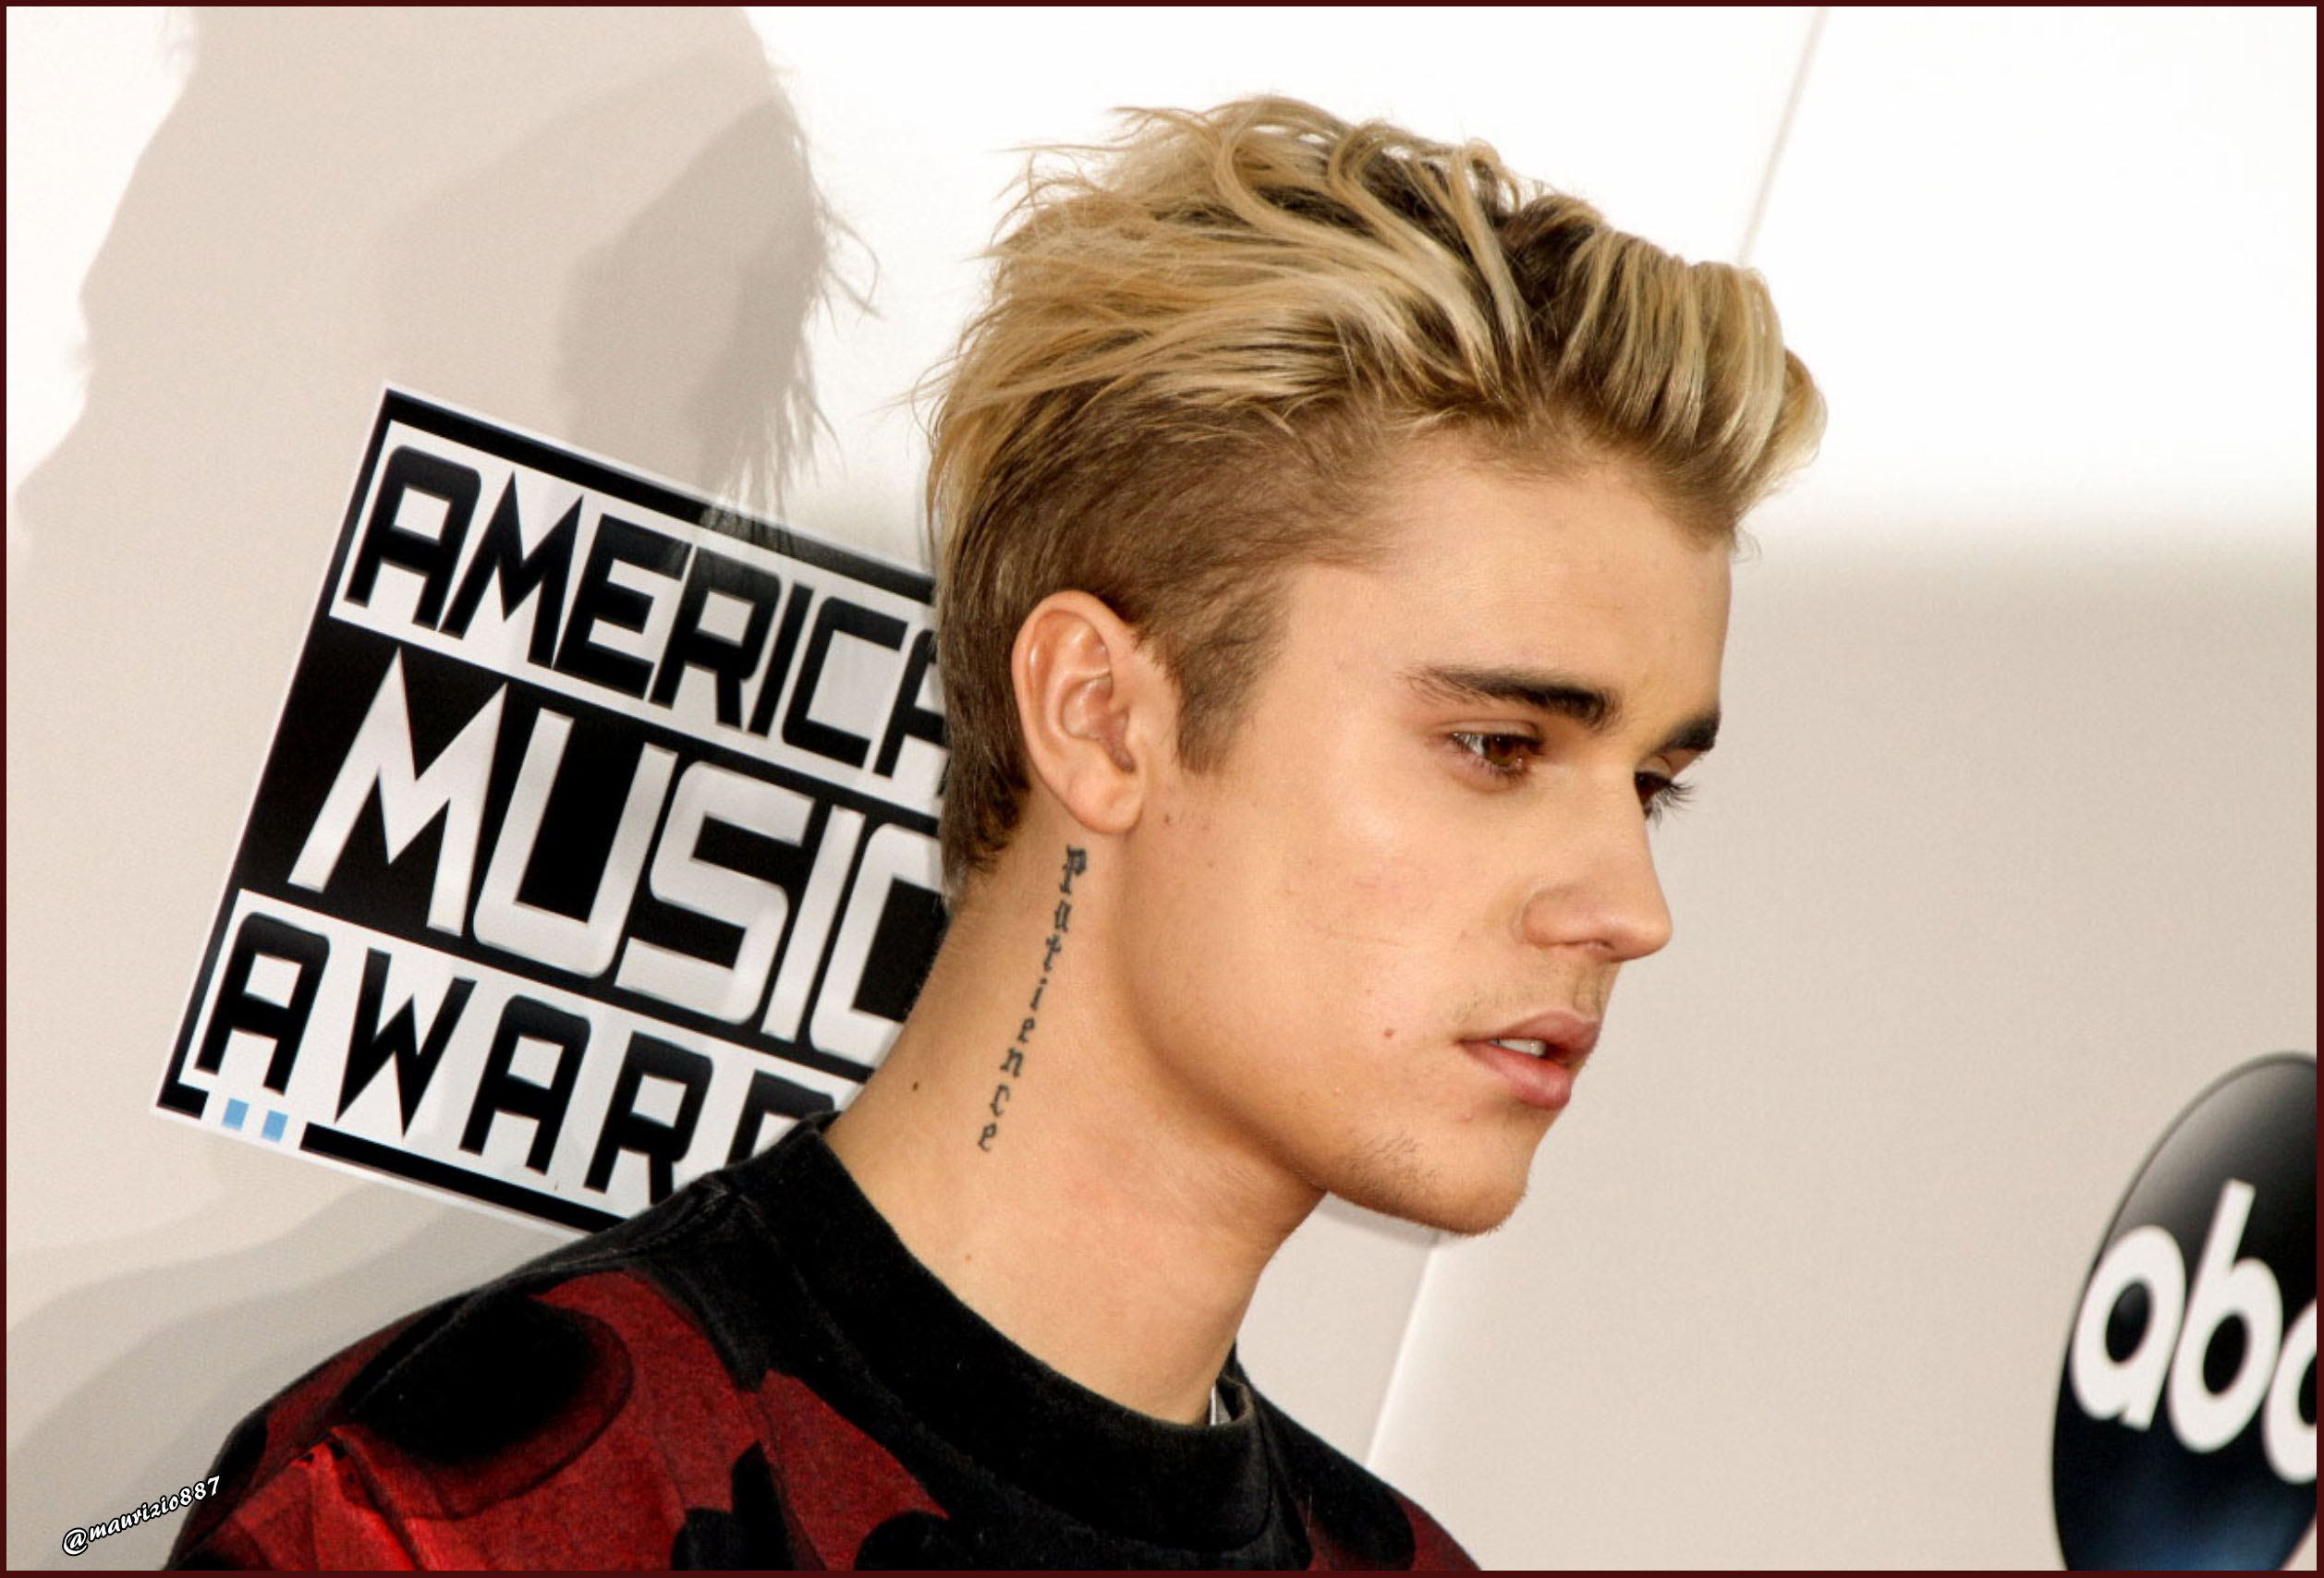 justin bieber,American musique Awards,2015